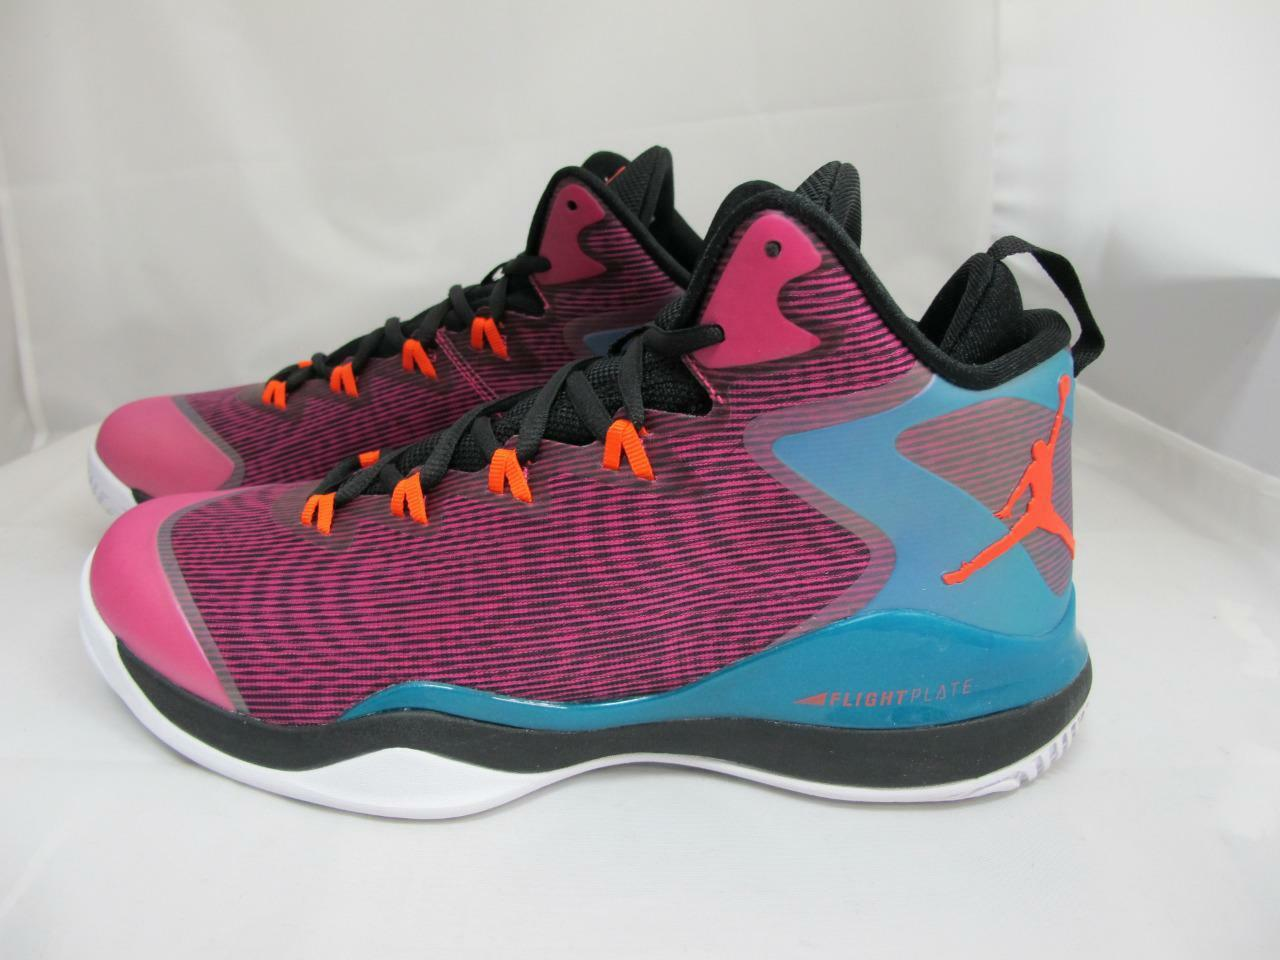 NEW MEN'S NIKE JORDAN SUPER.FLY 3 684933-625 The latest discount shoes for men and women